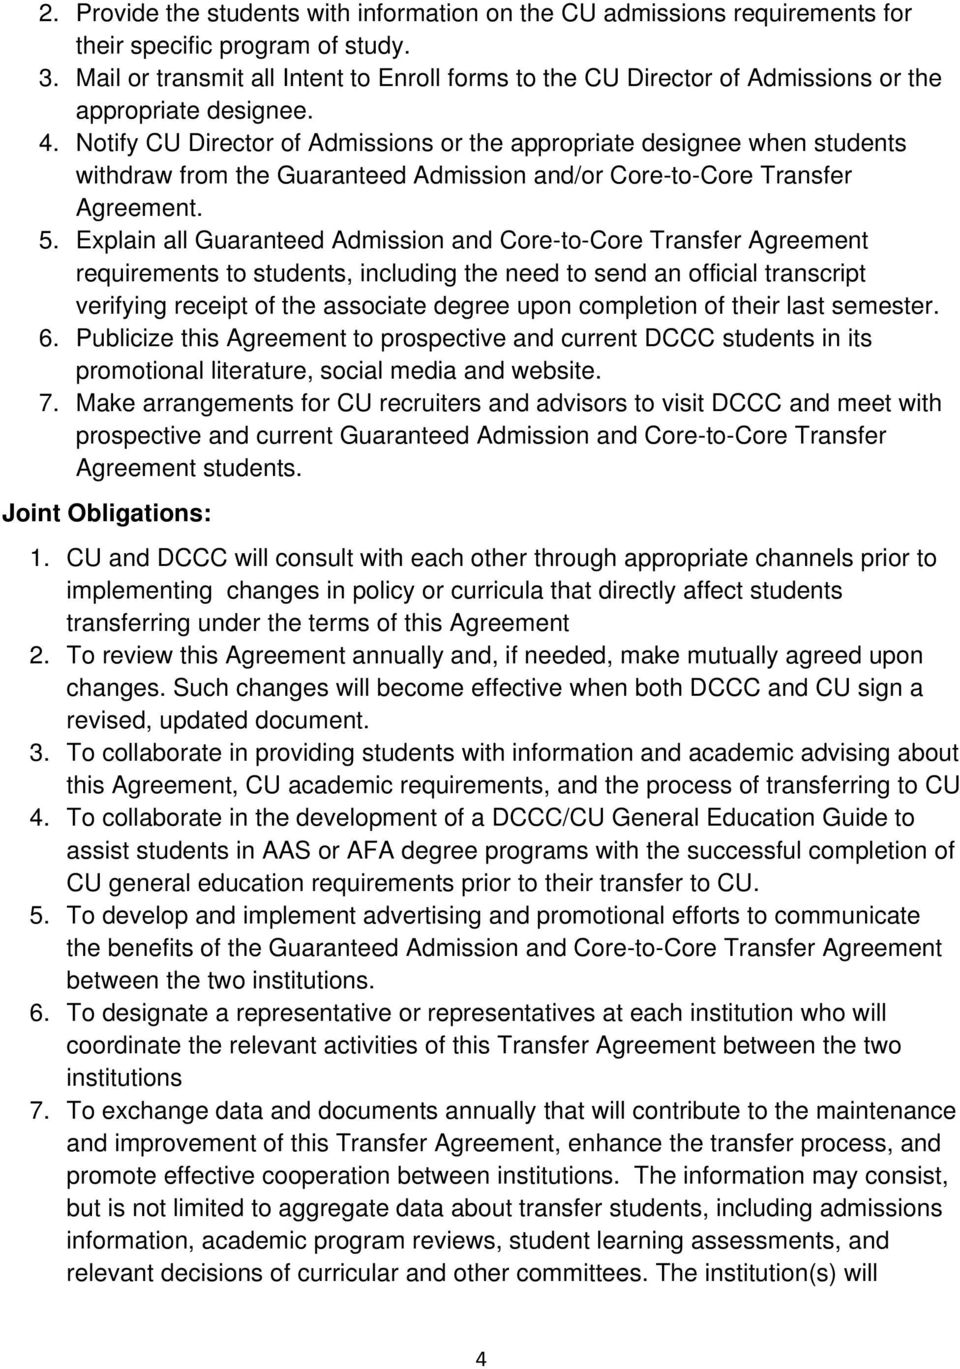 Notify CU Director of Admissions or the appropriate designee when students withdraw from the Guaranteed Admission and/or Core-to-Core Transfer Agreement. 5.